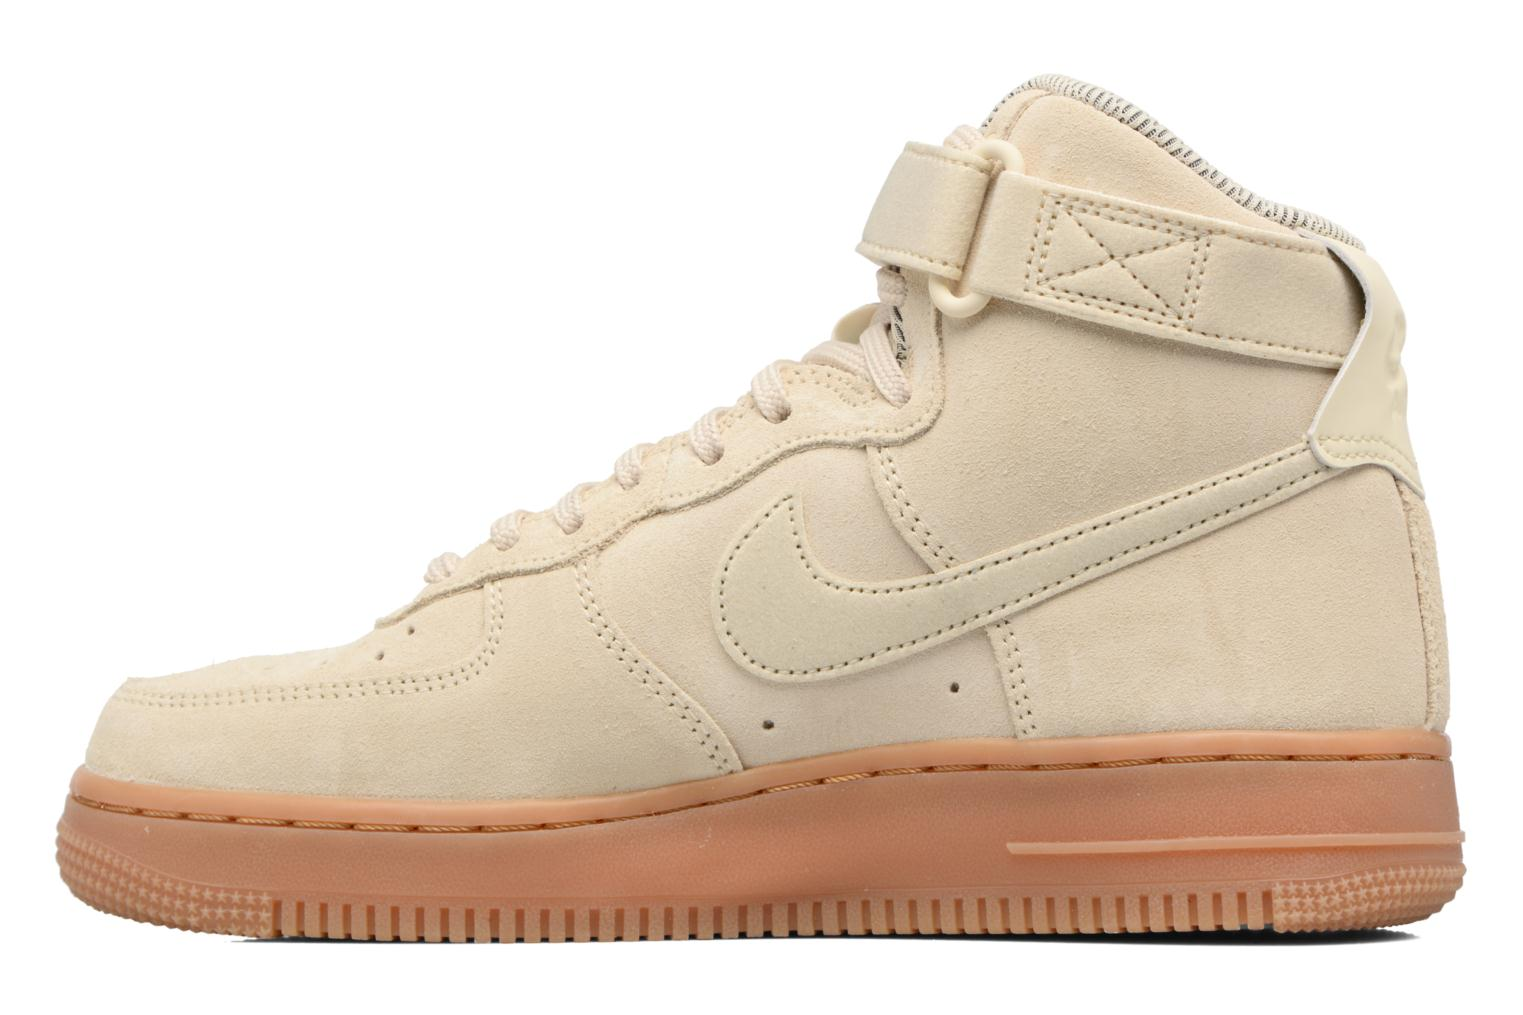 Wmns Air Force 1 Hi Se Muslin/Muslin-Gum Med Brown-Ivory